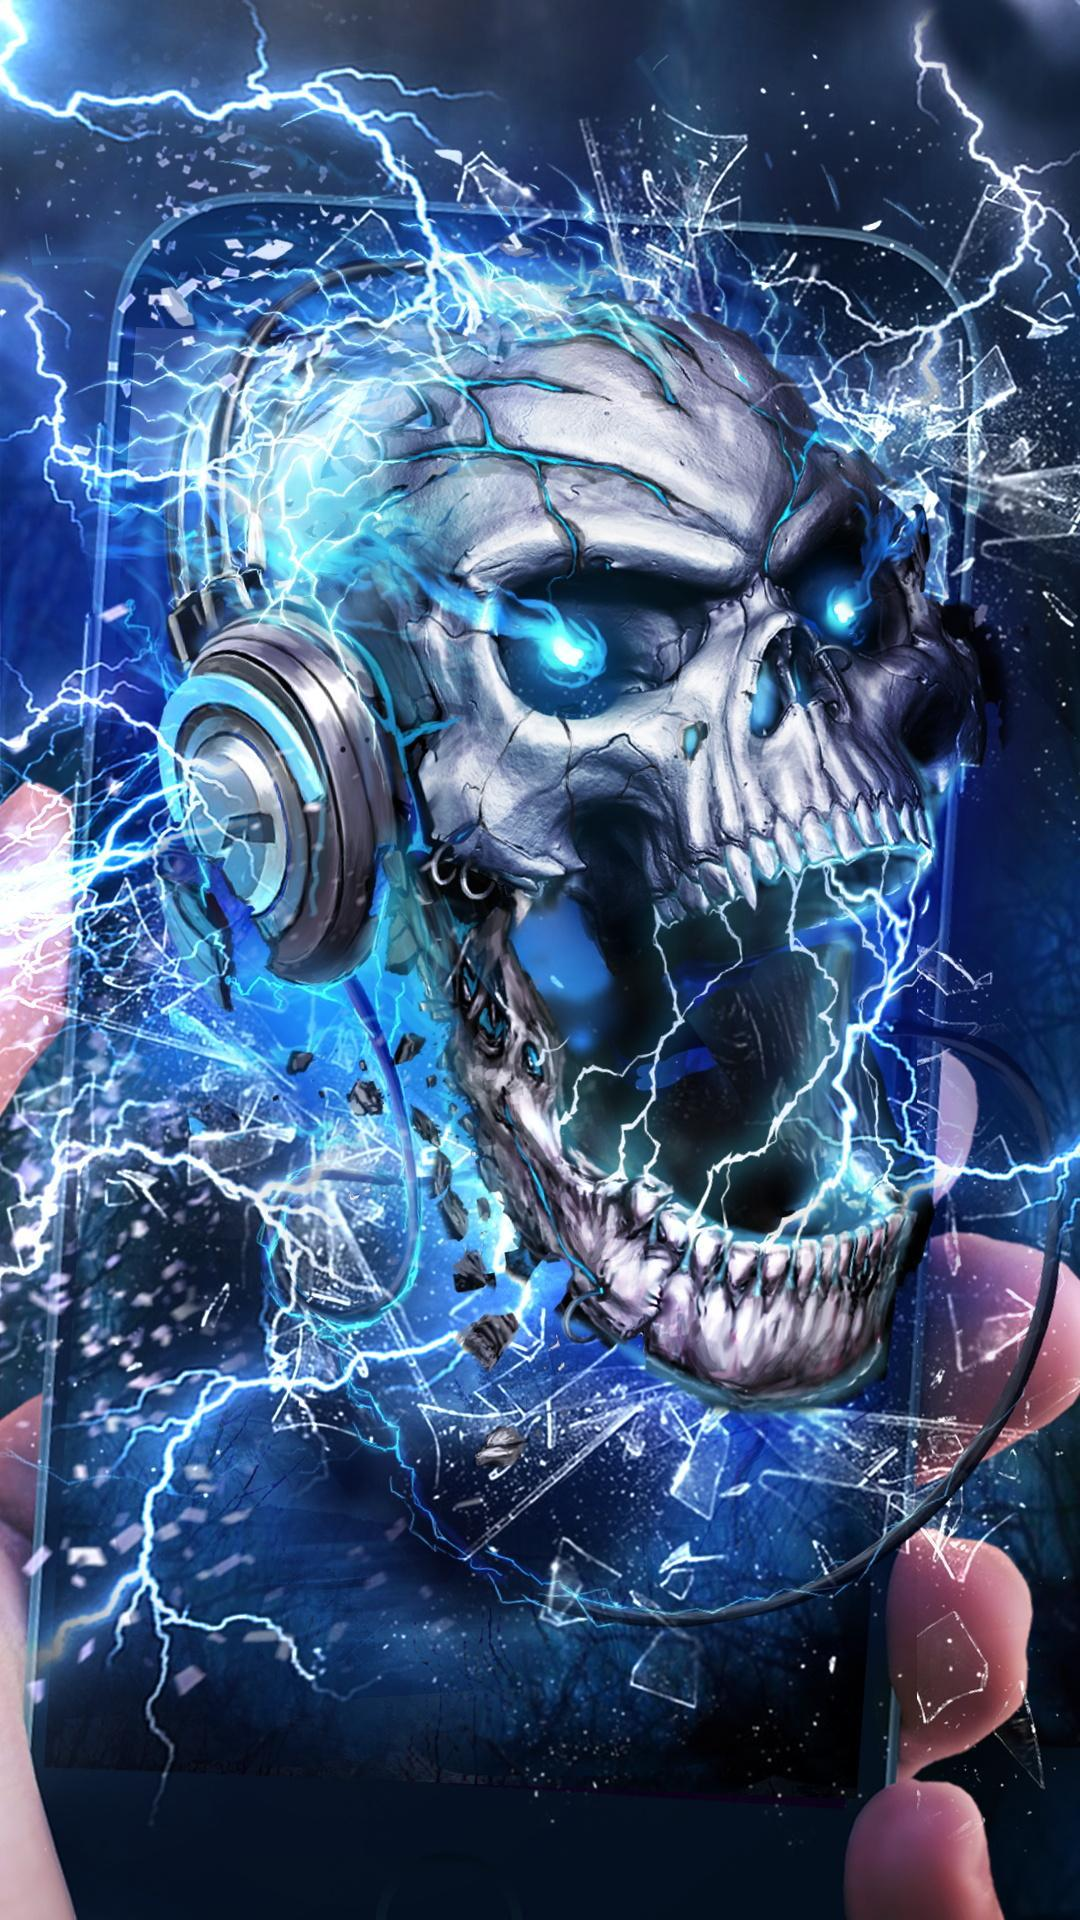 Electric Skull Live Wallpaper for Android - APK Download